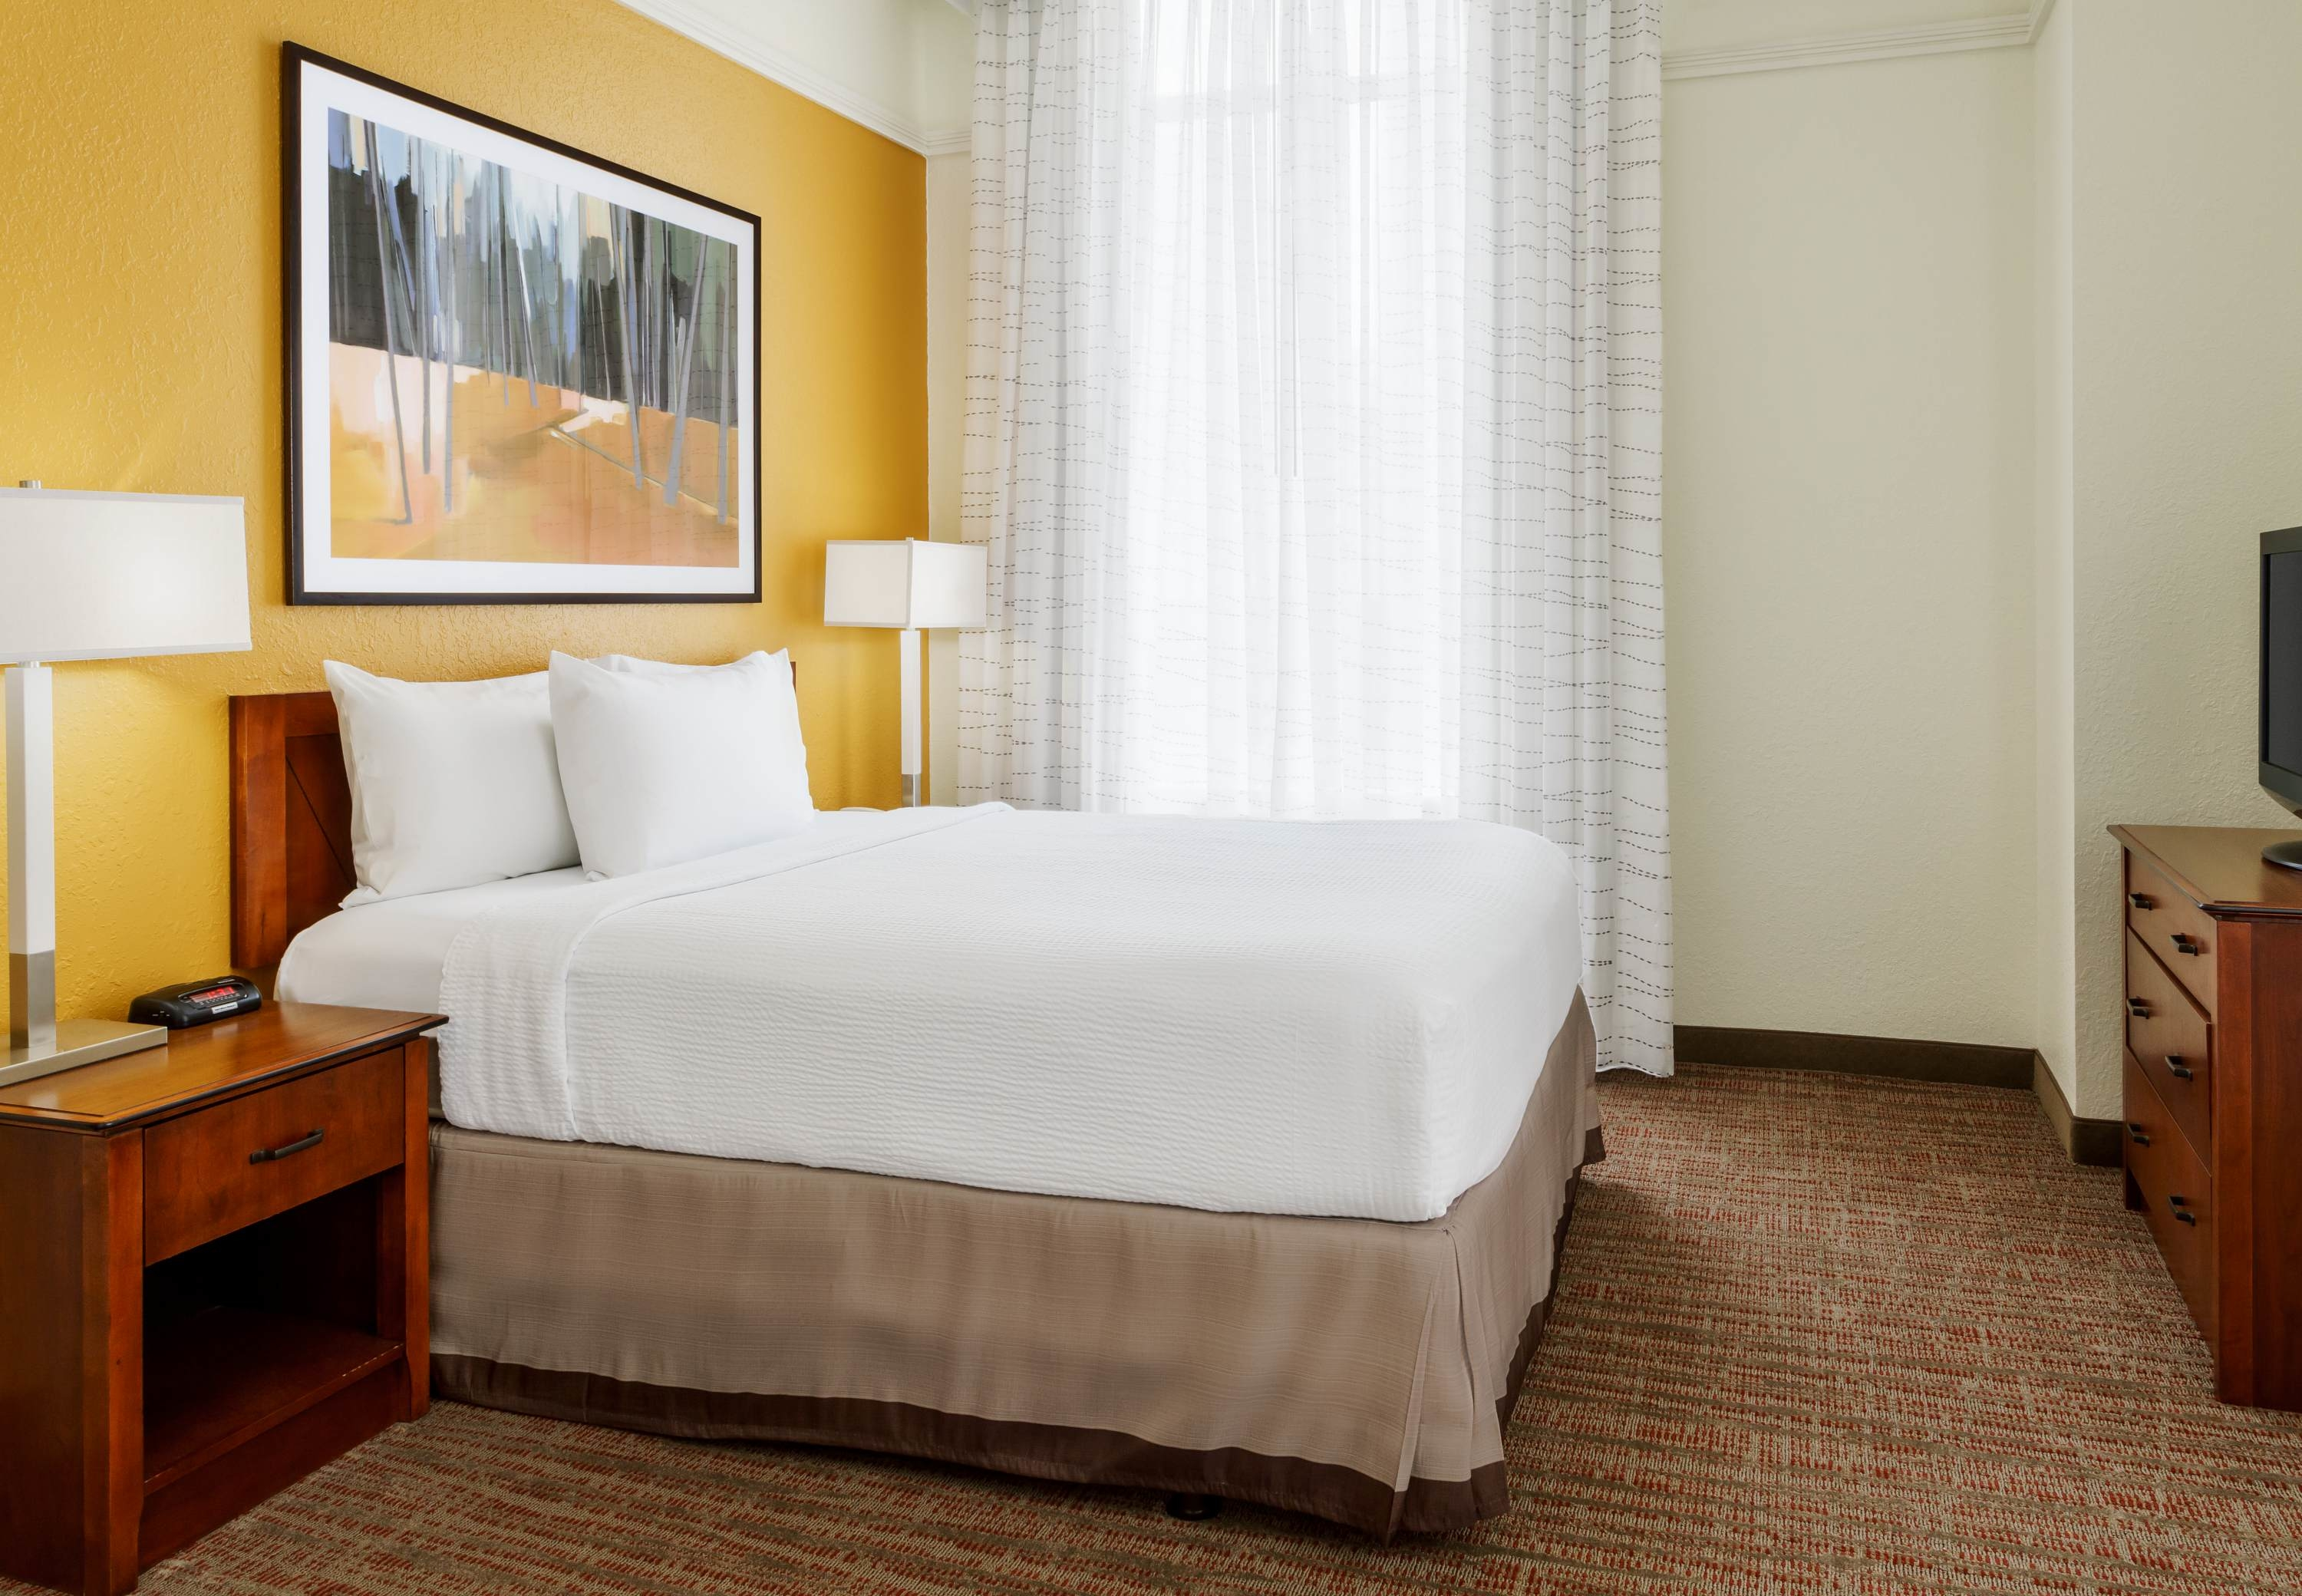 Residence Inn by Marriott Houston Downtown/Convention Center image 12